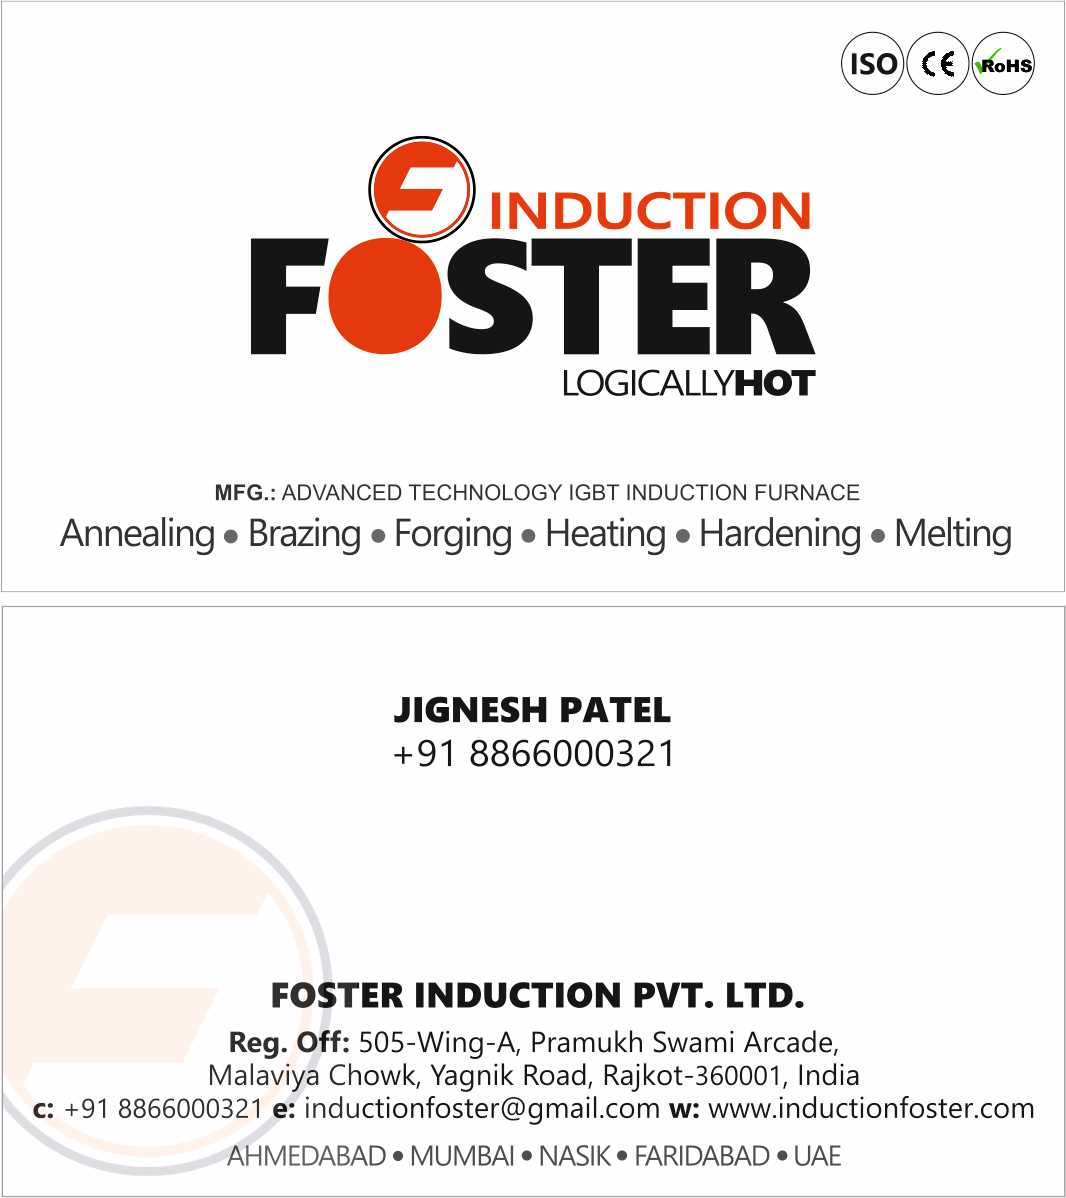 Foster Induction Private Limited